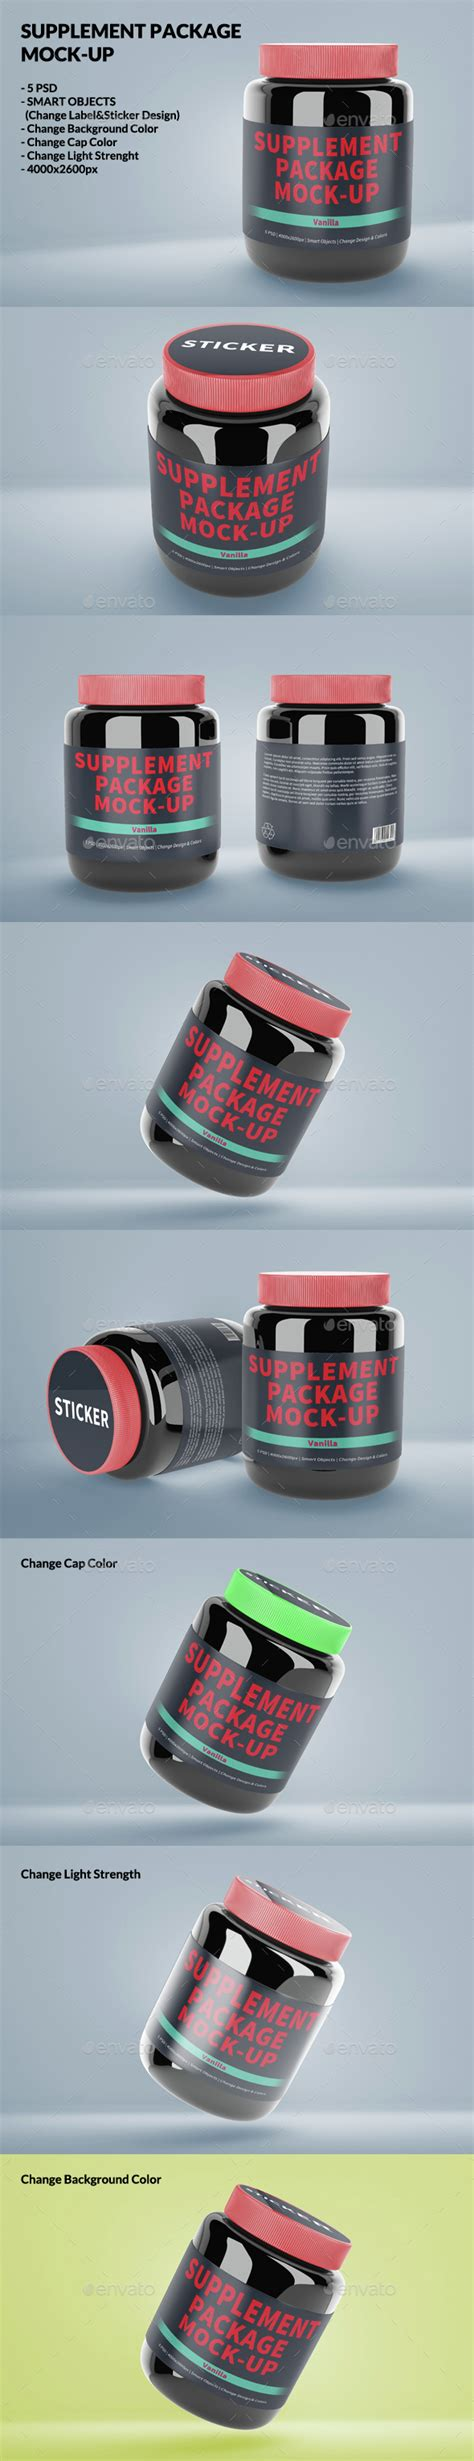 supplement packages supplement package mock up by nawczoraj graphicriver